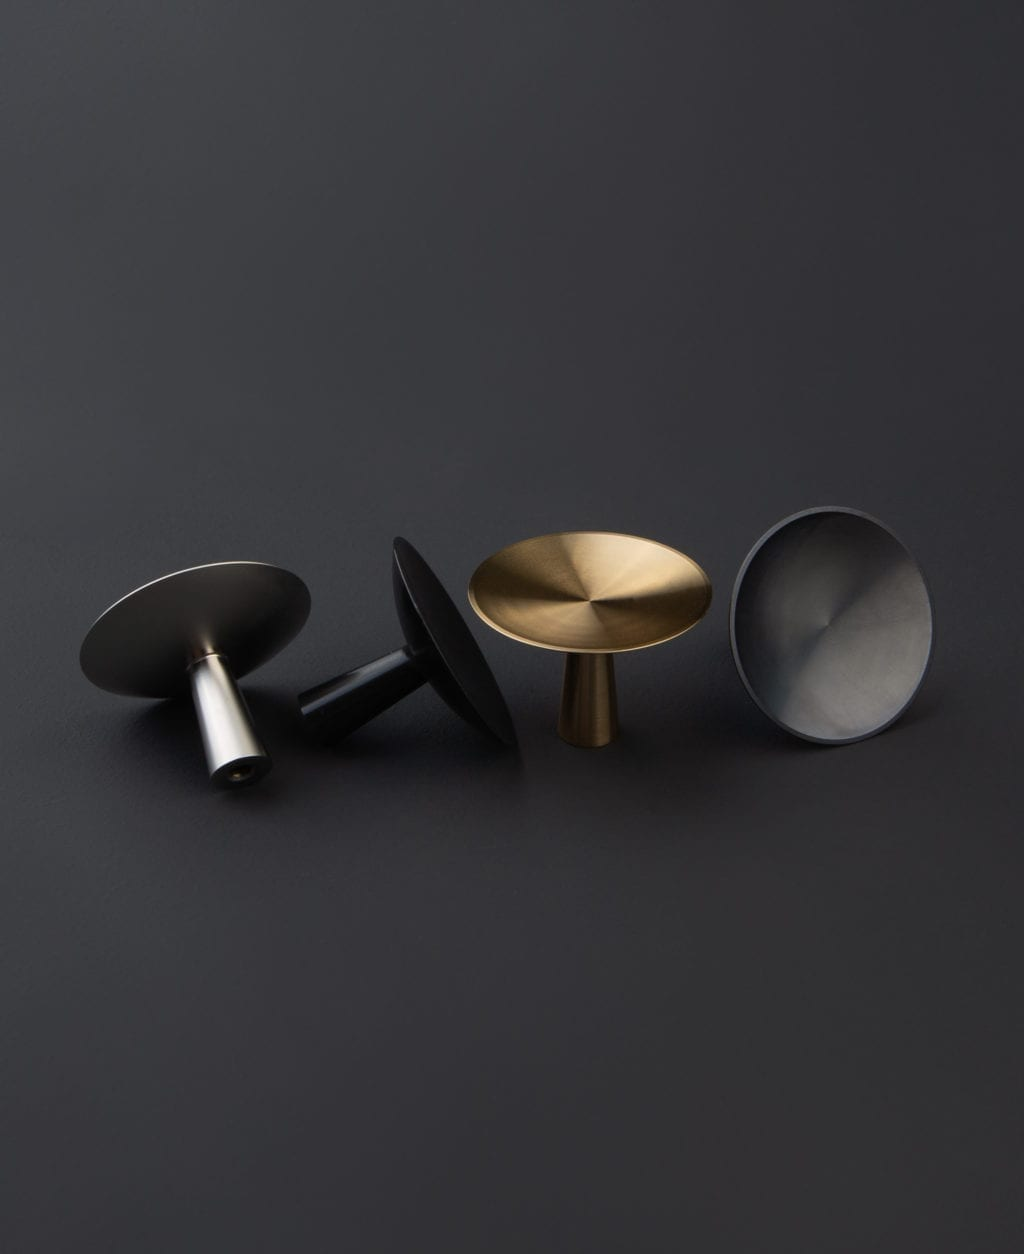 group shot of four rococo kitchen knobs in silver, black, gold and antique black against black background